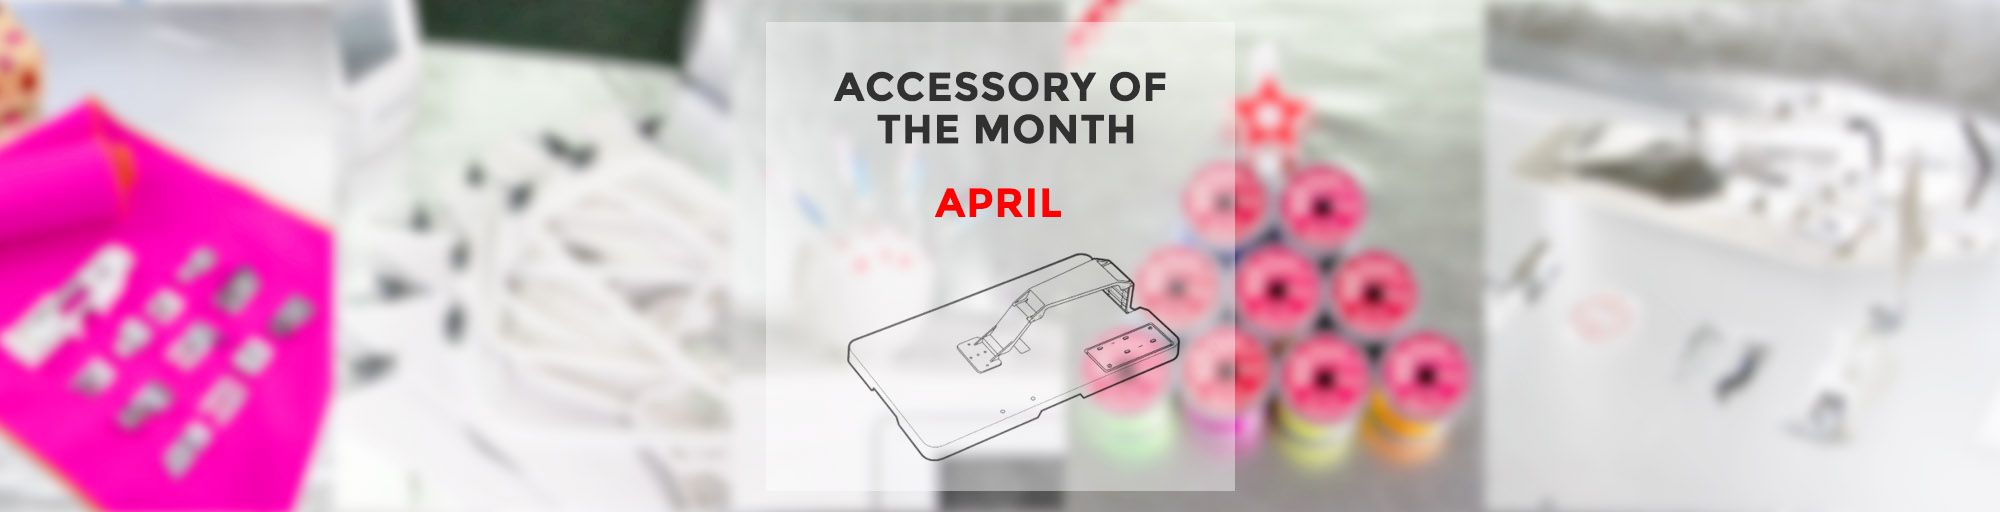 Accessory of the month April Cloth Setter